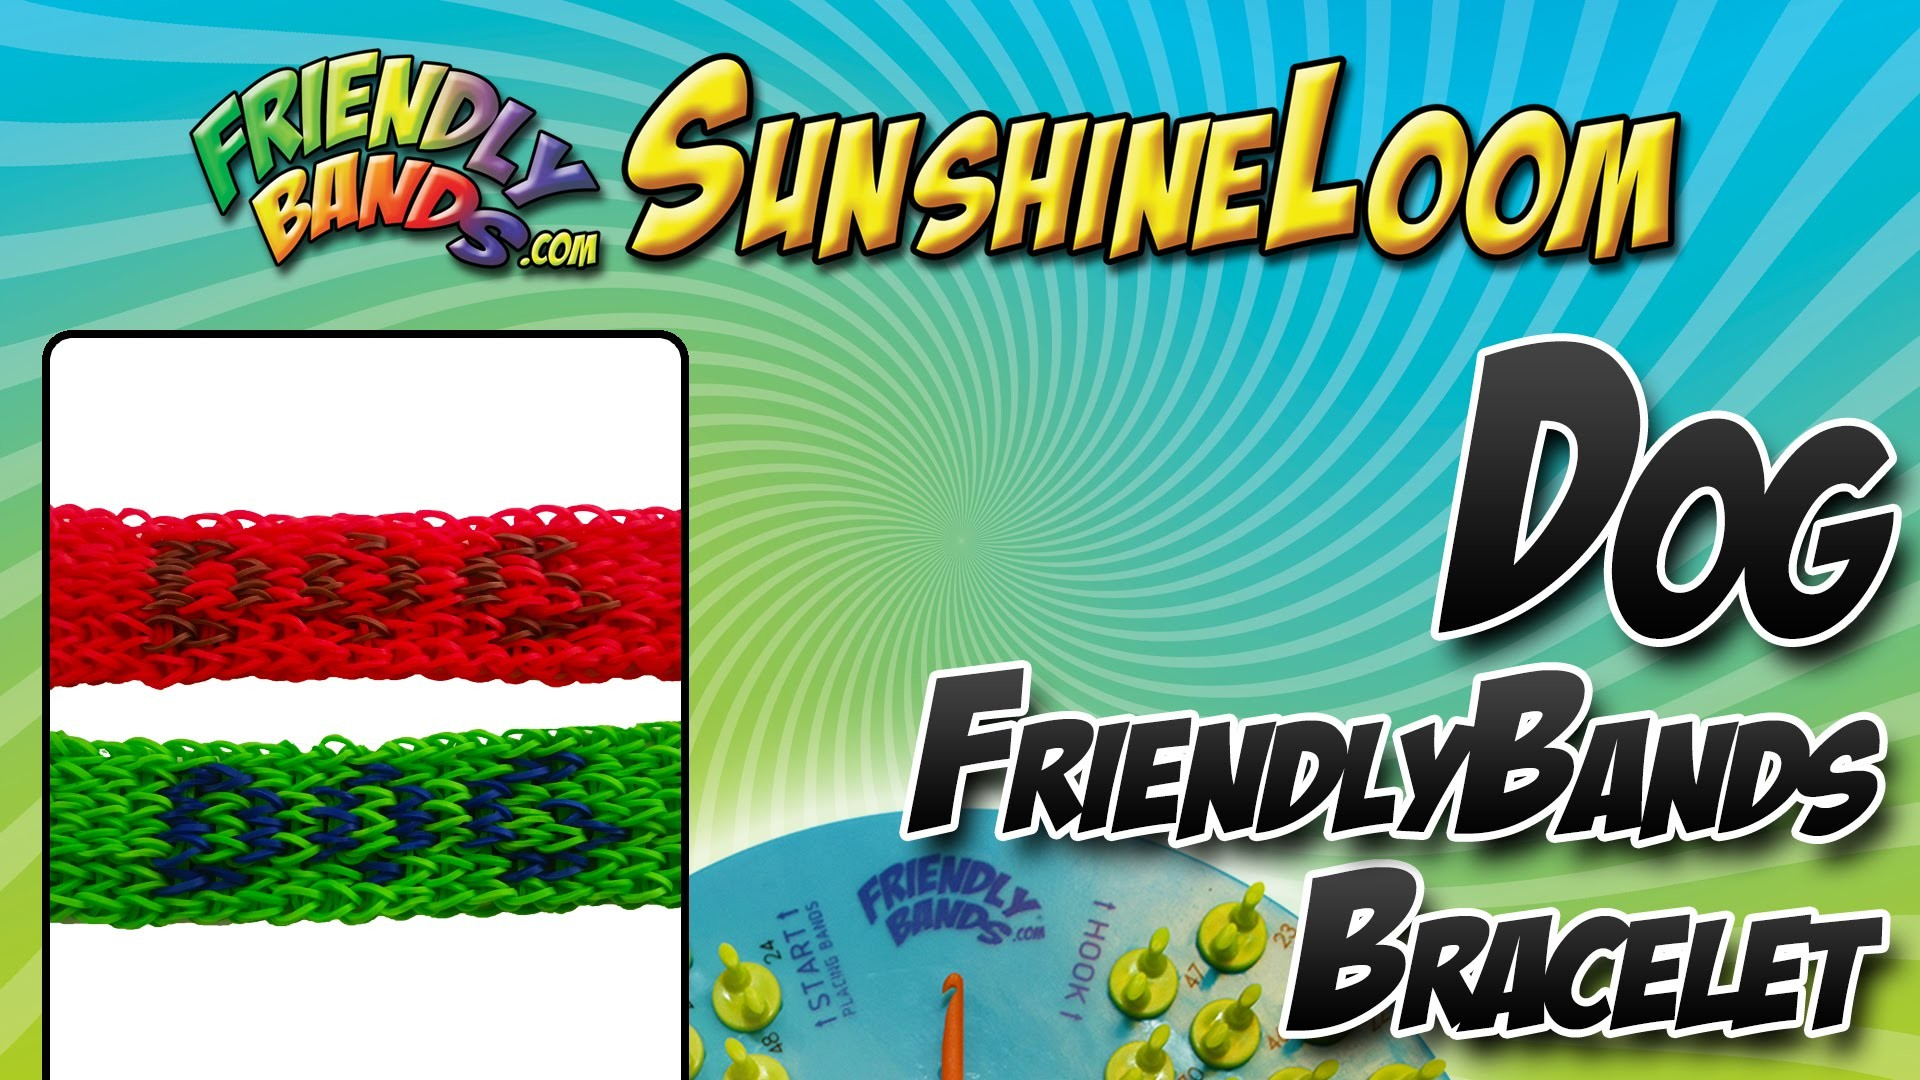 How to Make a FriendlyBand SunshineLoom - Dog HeptaBand Tutorial